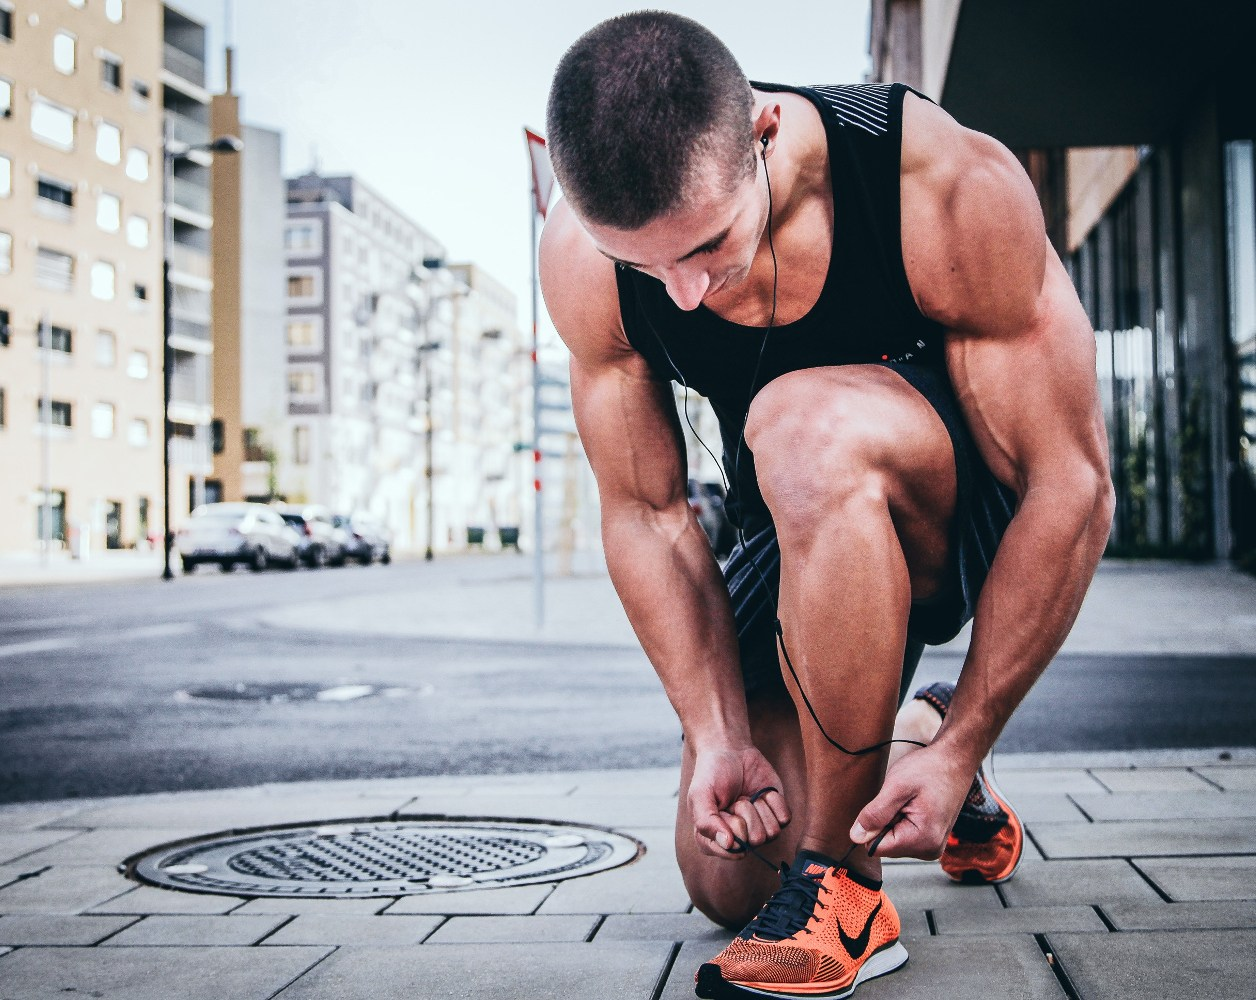 Maintaining Happy Hormones While Getting Lean